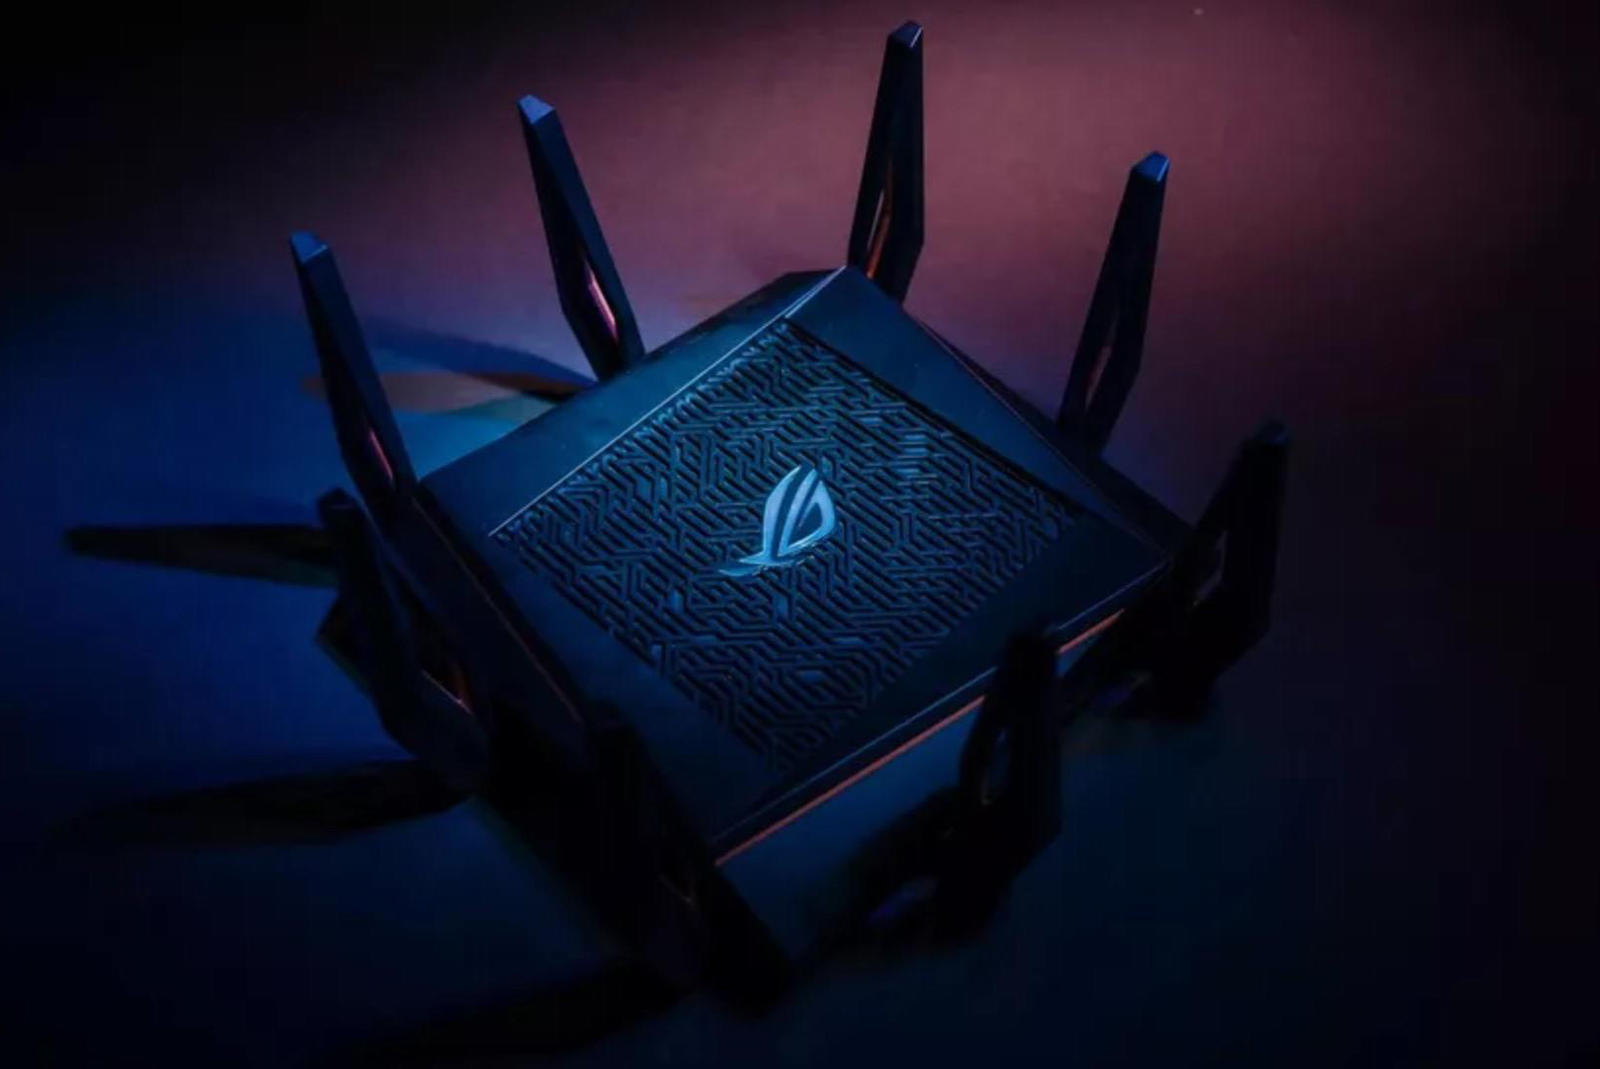 How to change the username and password for your Asus router